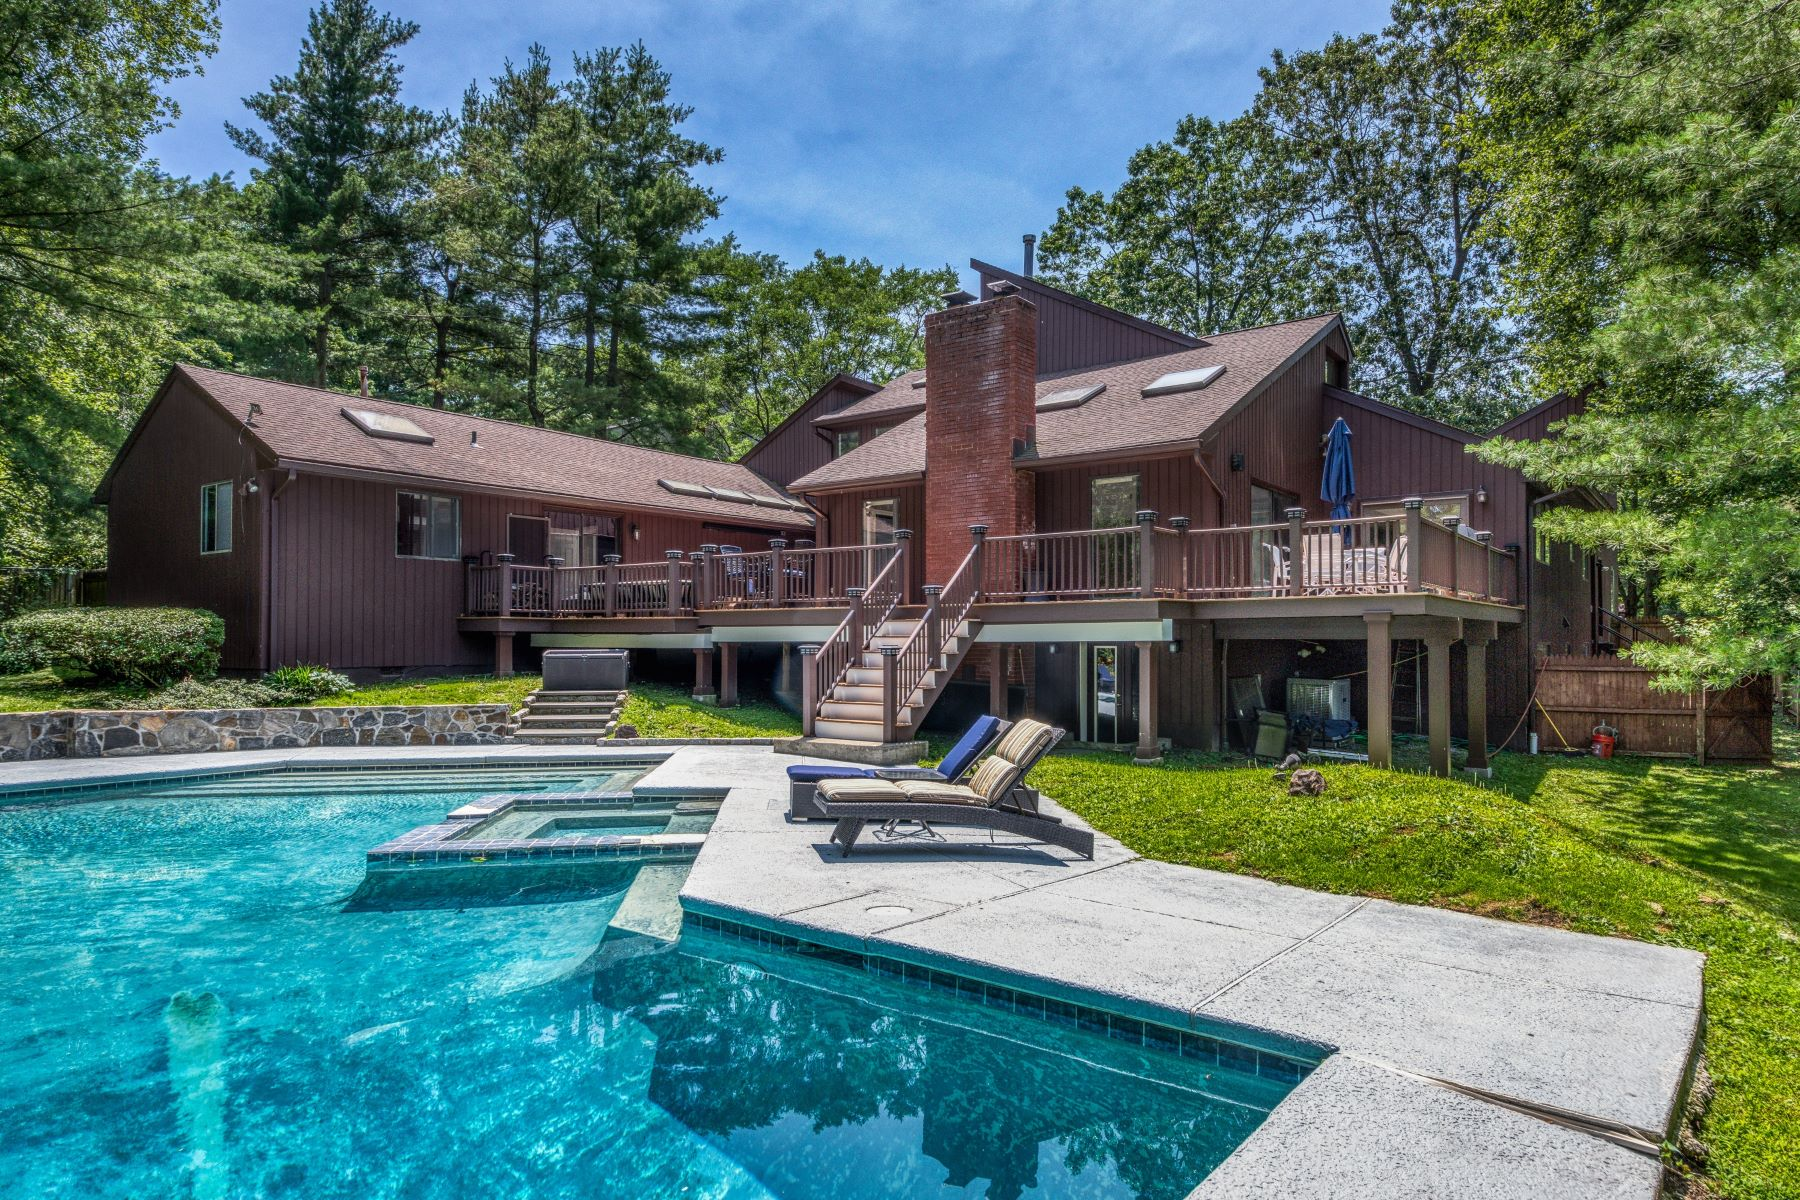 Single Family Homes for Sale at 7 Woods Way White Plains, New York 10605 United States